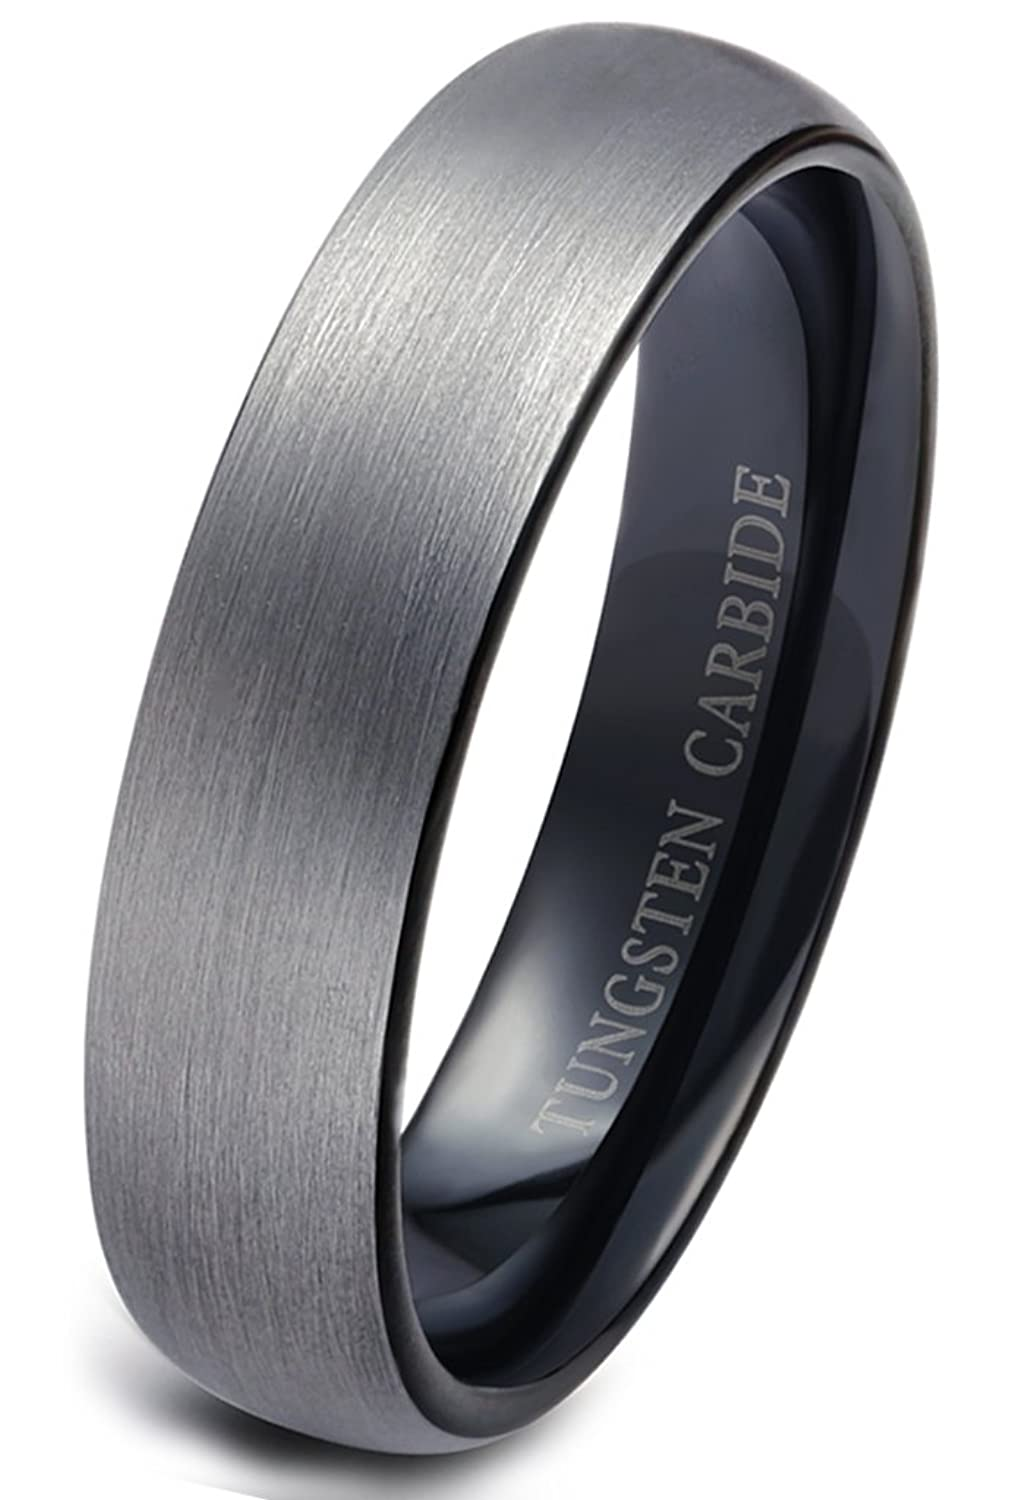 Jstyle Jewelry Tungsten Rings for Men Wedding Engagement Band Brushed Black 6mm Size 7-14